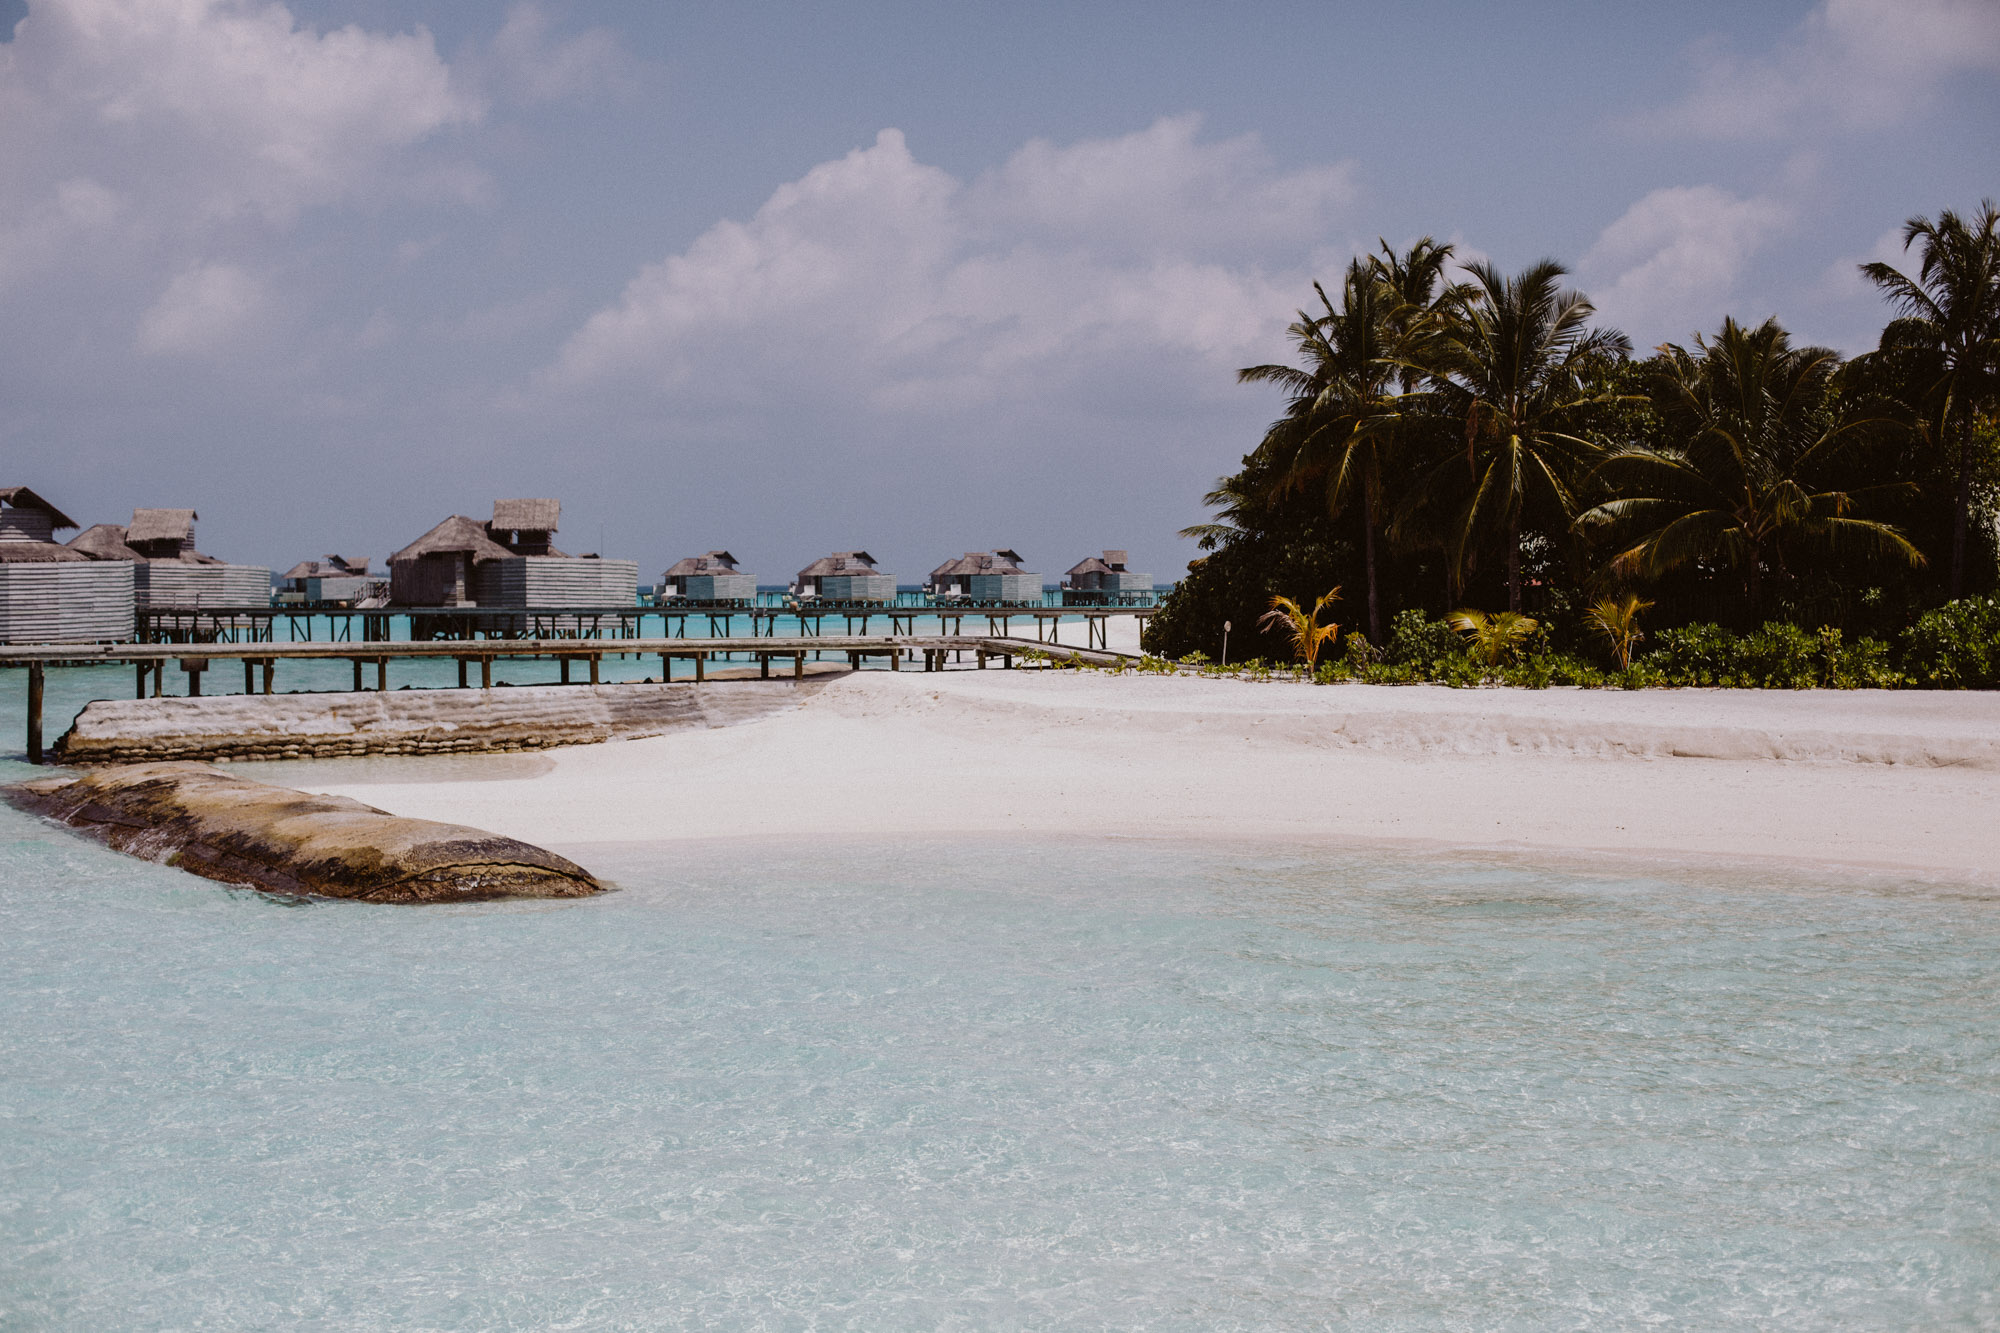 Hotel Review: Six Senses Laamu, Maldives